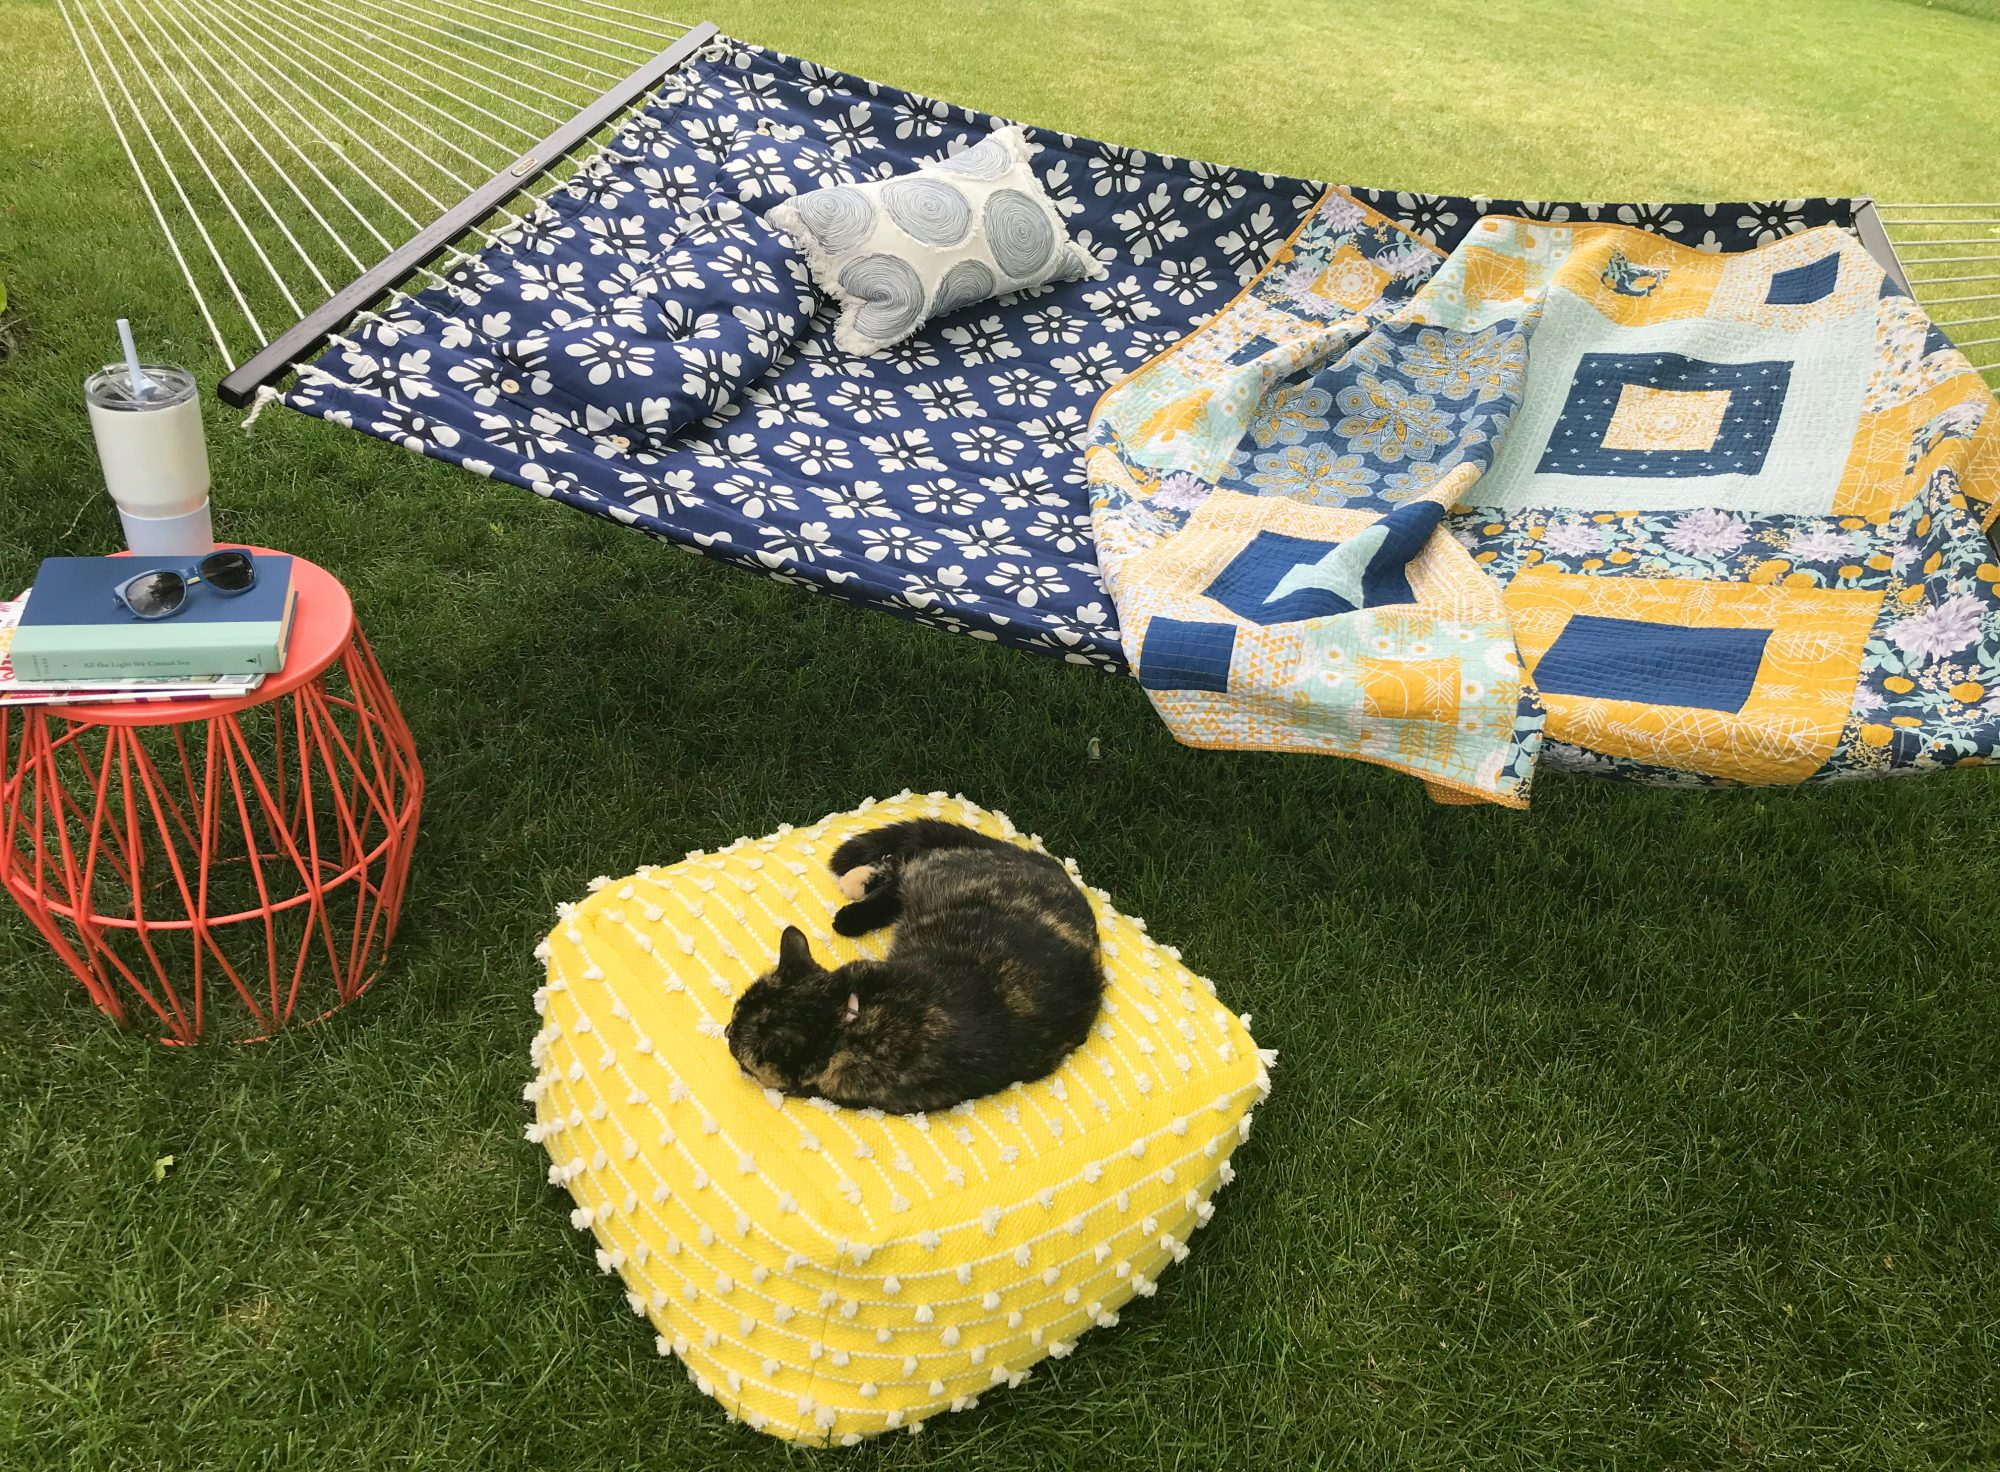 how to display quilts outdoors